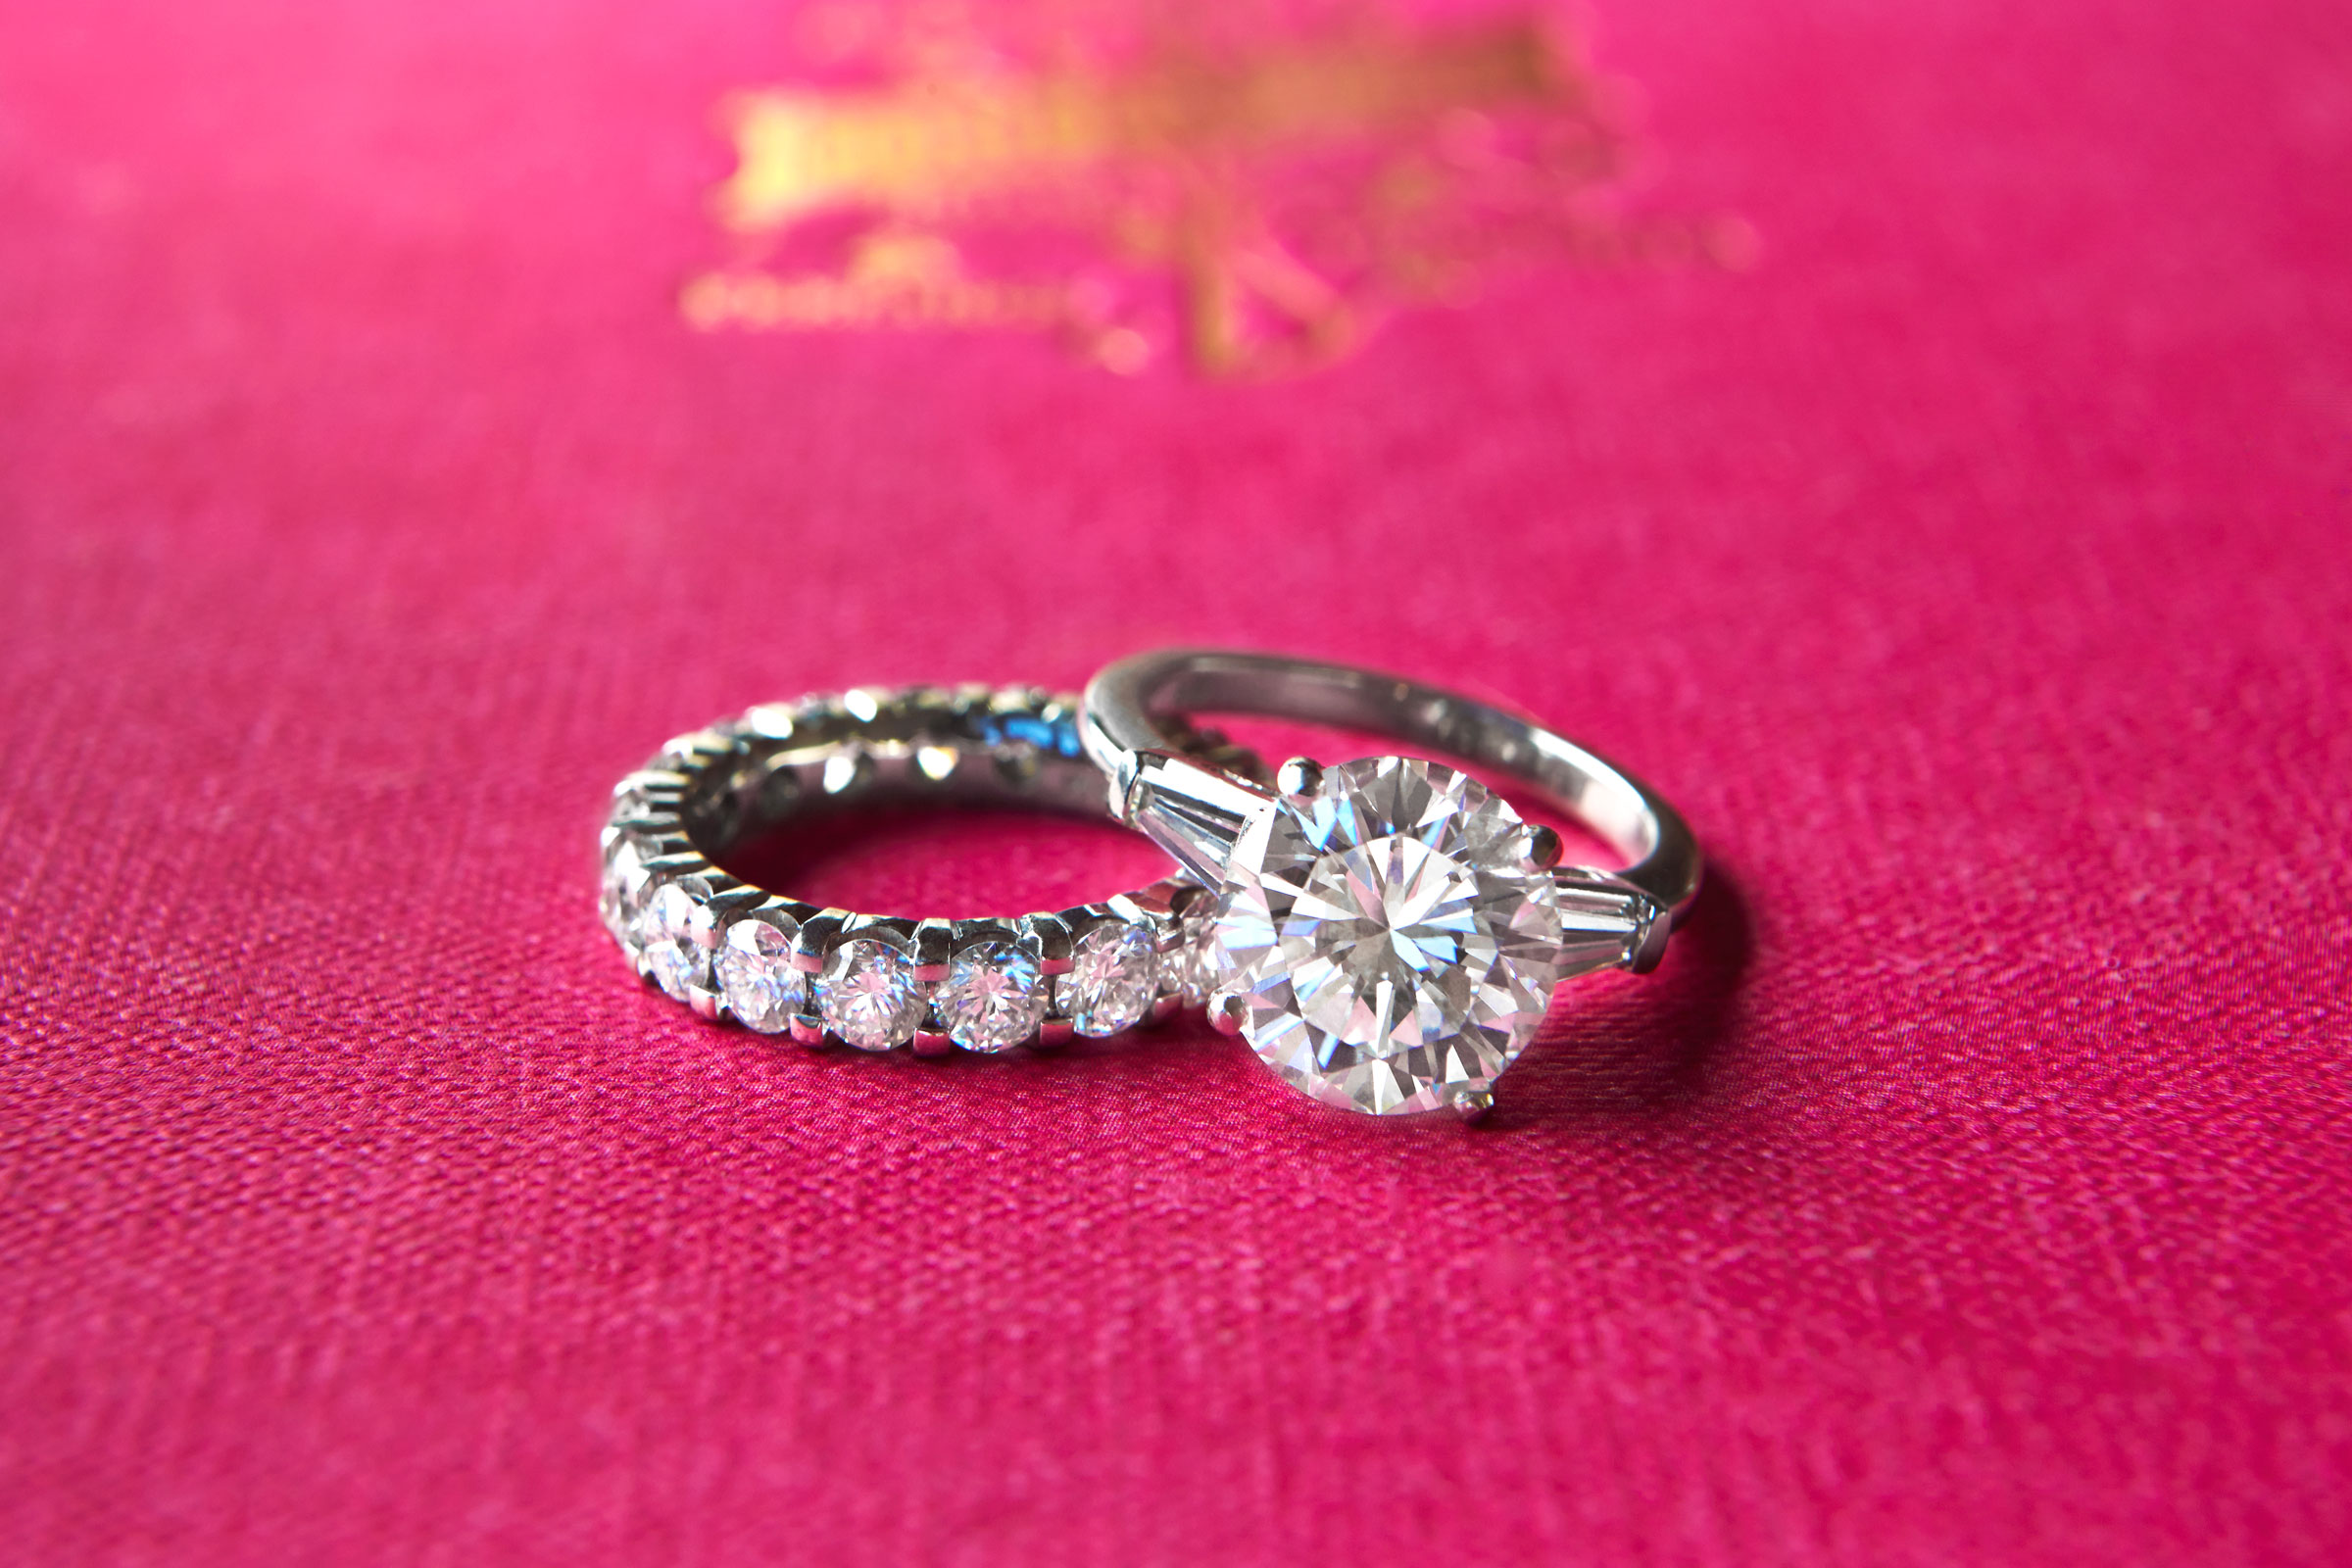 diamond-ring.jpg